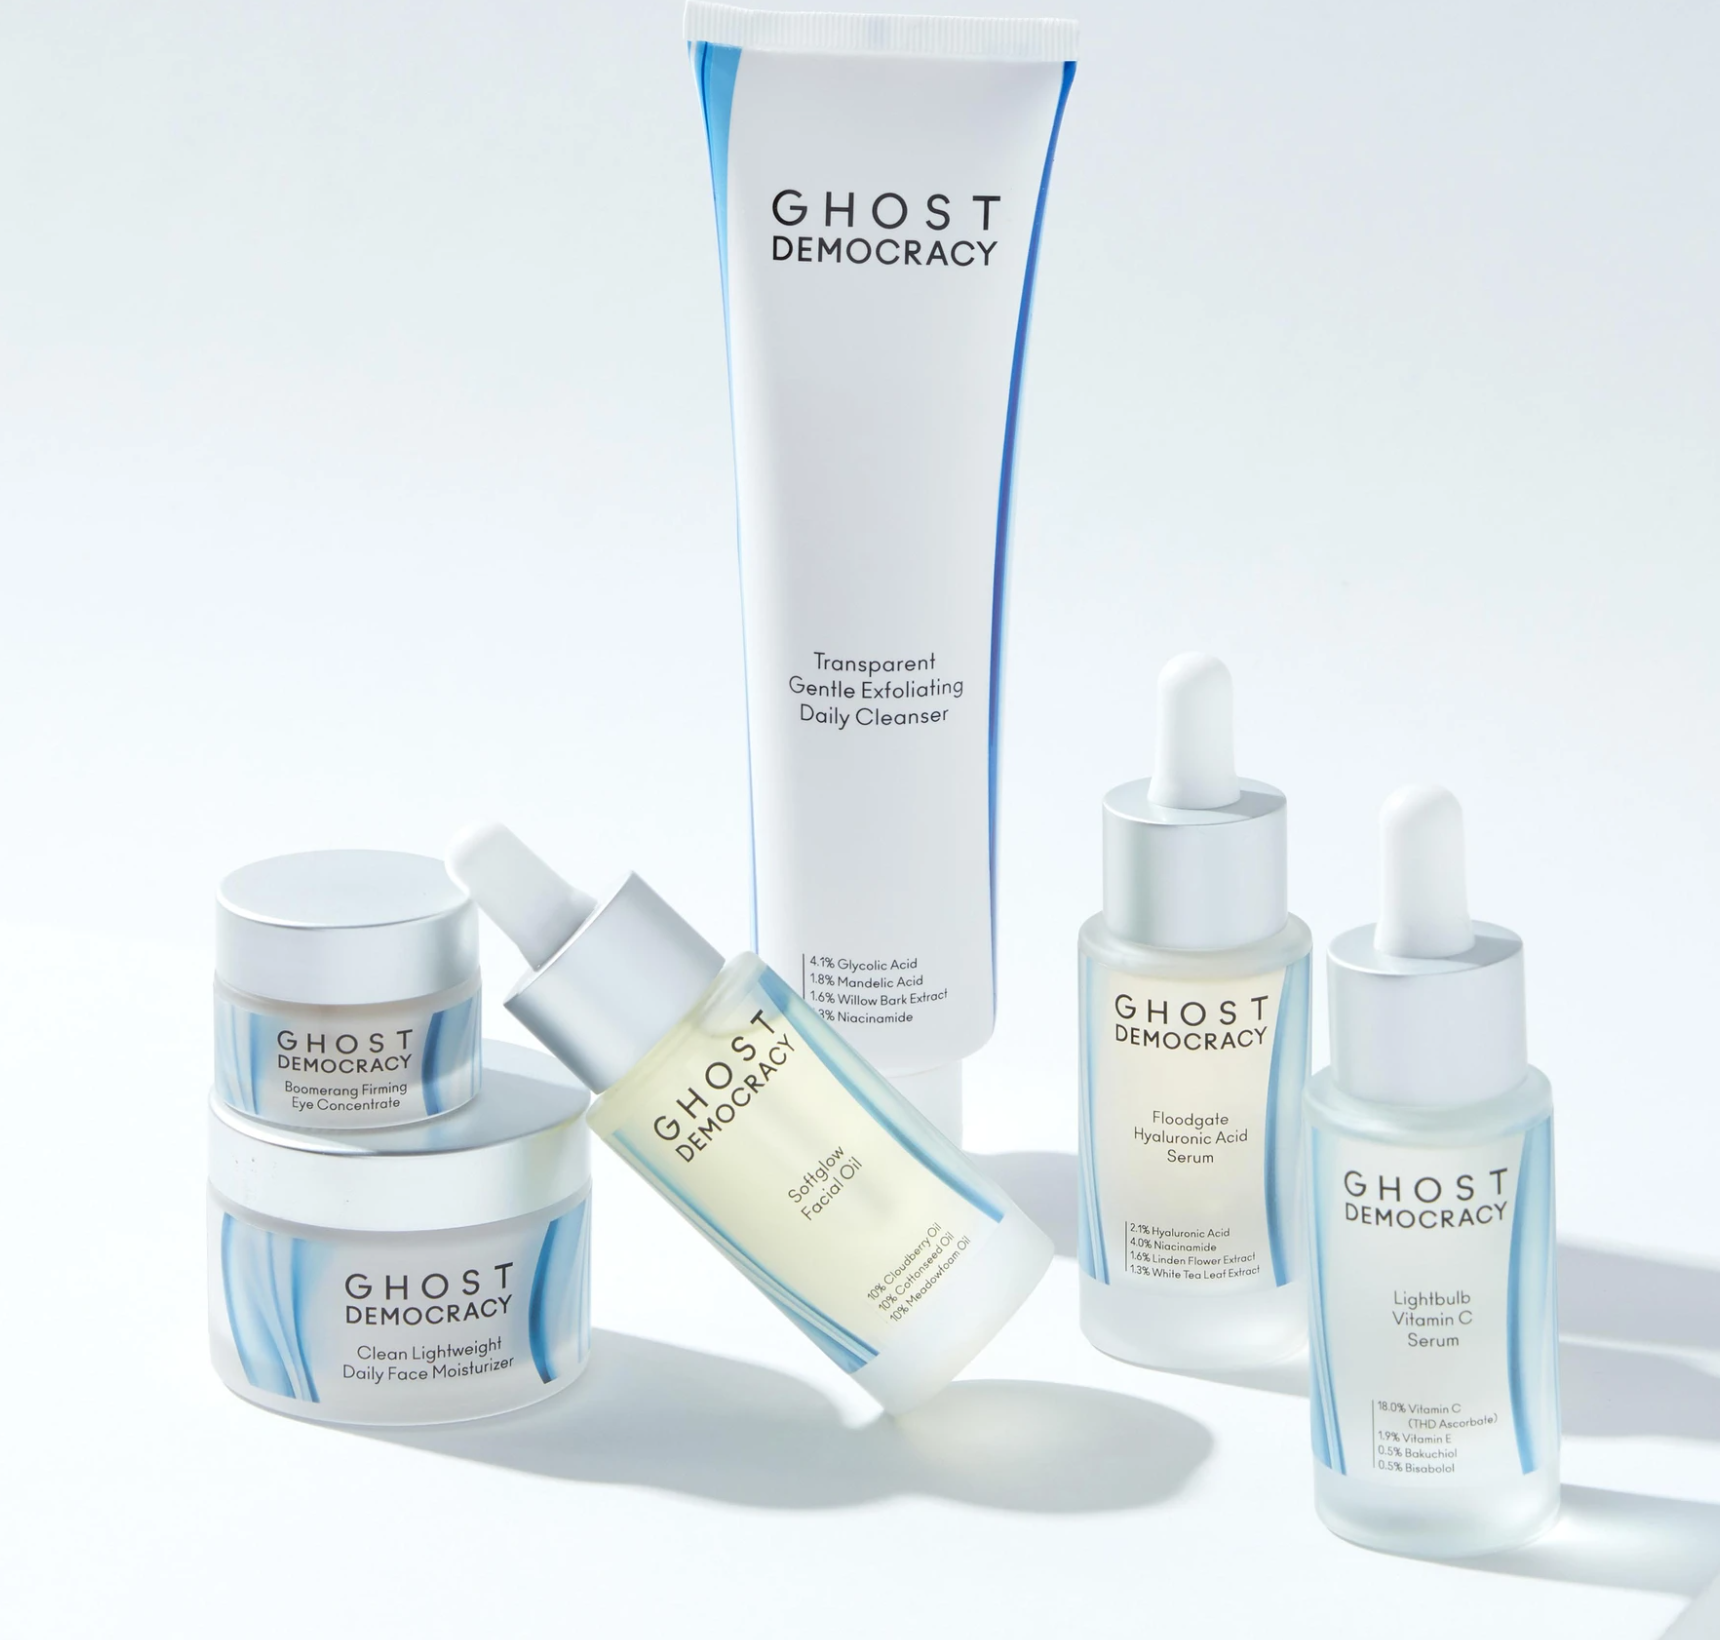 Ghost Democracy: Save Up to $50 Off Skincare